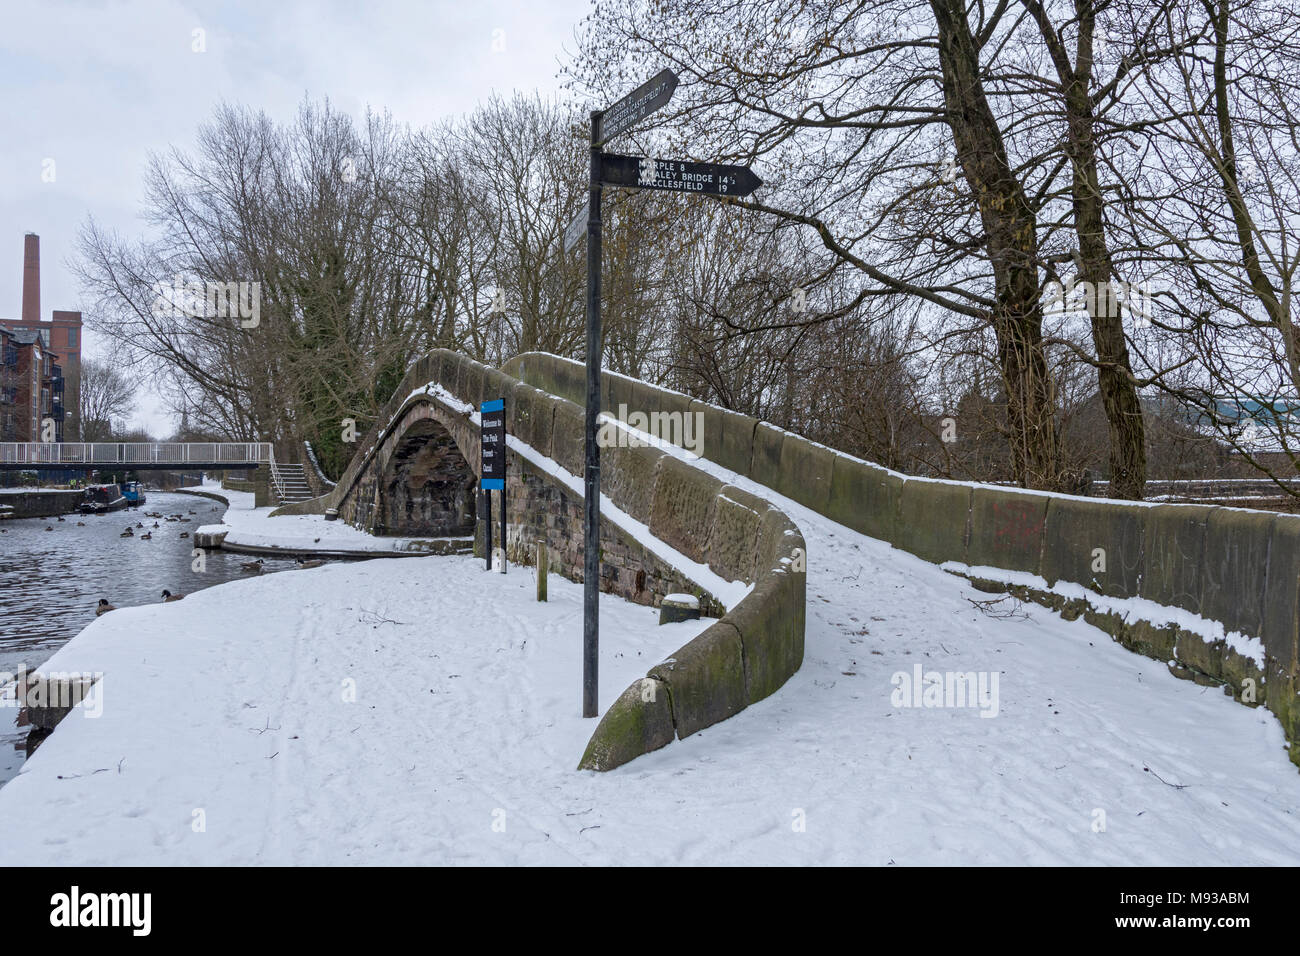 Footbridge over the Peak Forest canal at its junction with the Ashton Canal at Portland Basin, Ashton-under-Lyne, Tameside, Manchester, England, UK - Stock Image